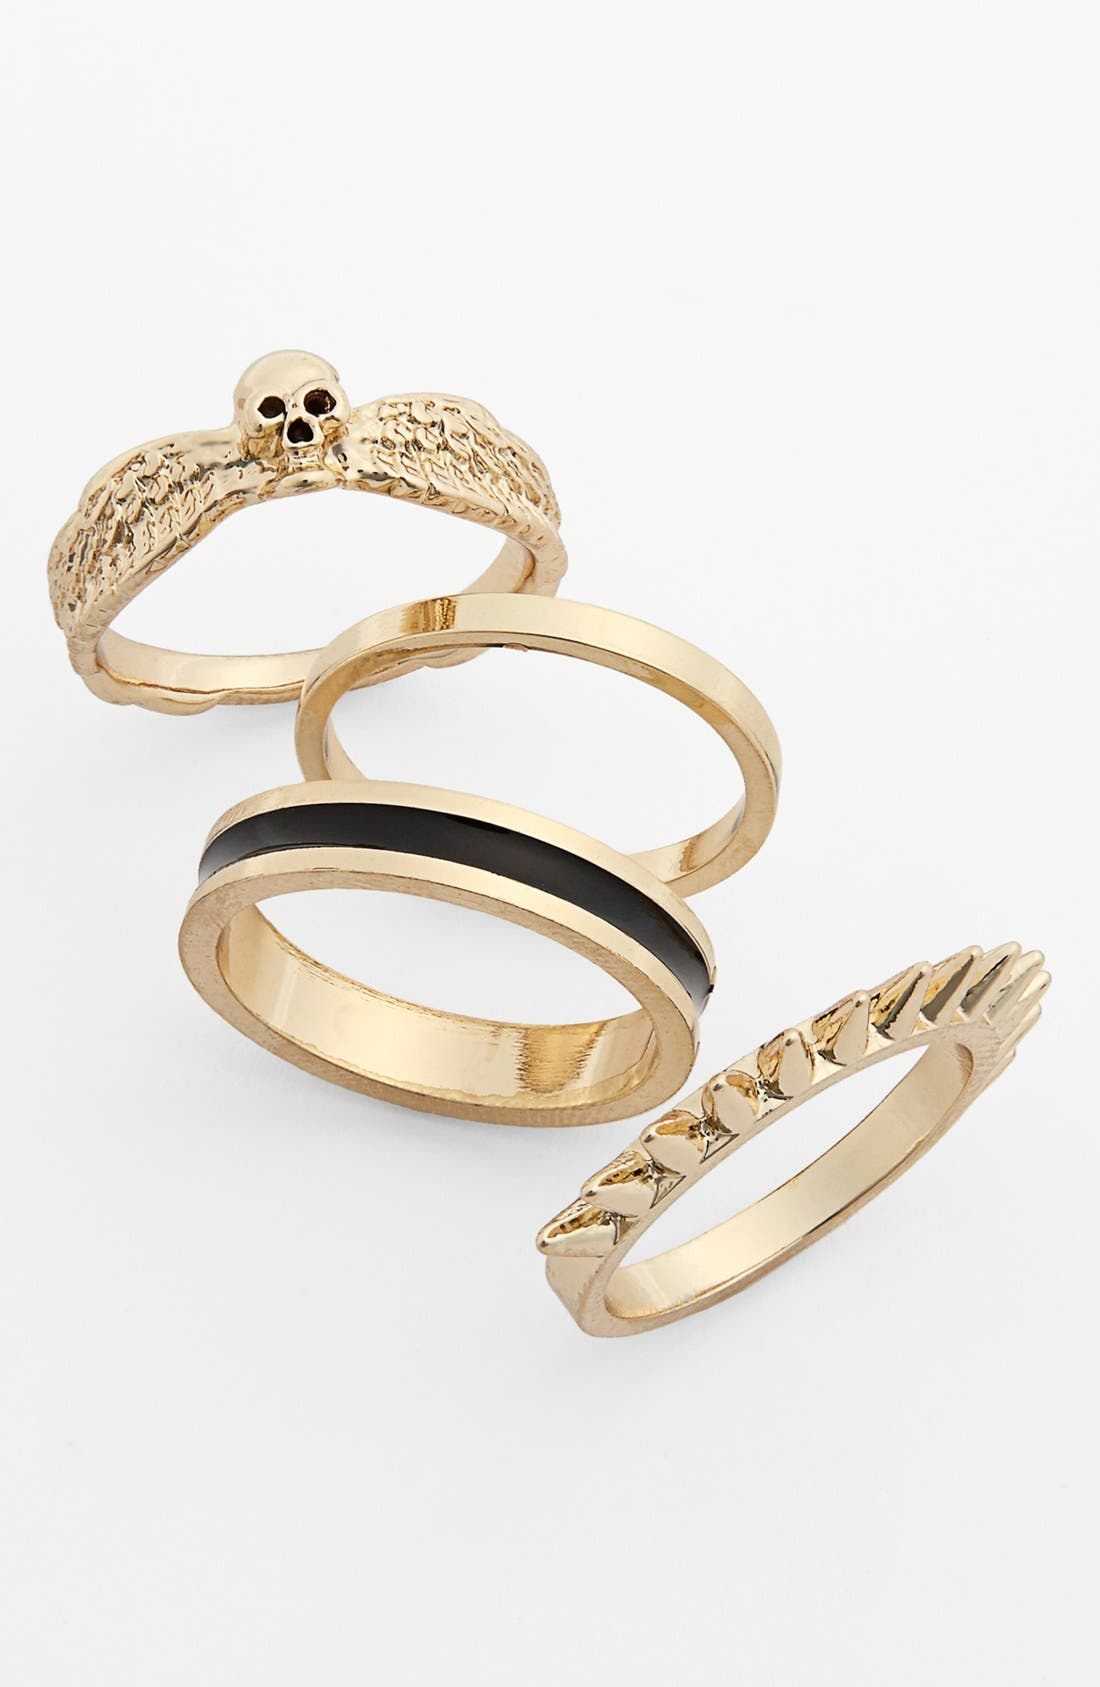 Main Image - Metal Haven by KENDALL + KYLIE Stackable Rings (Set of 4) (Juniors) (Nordstrom Exclusive)